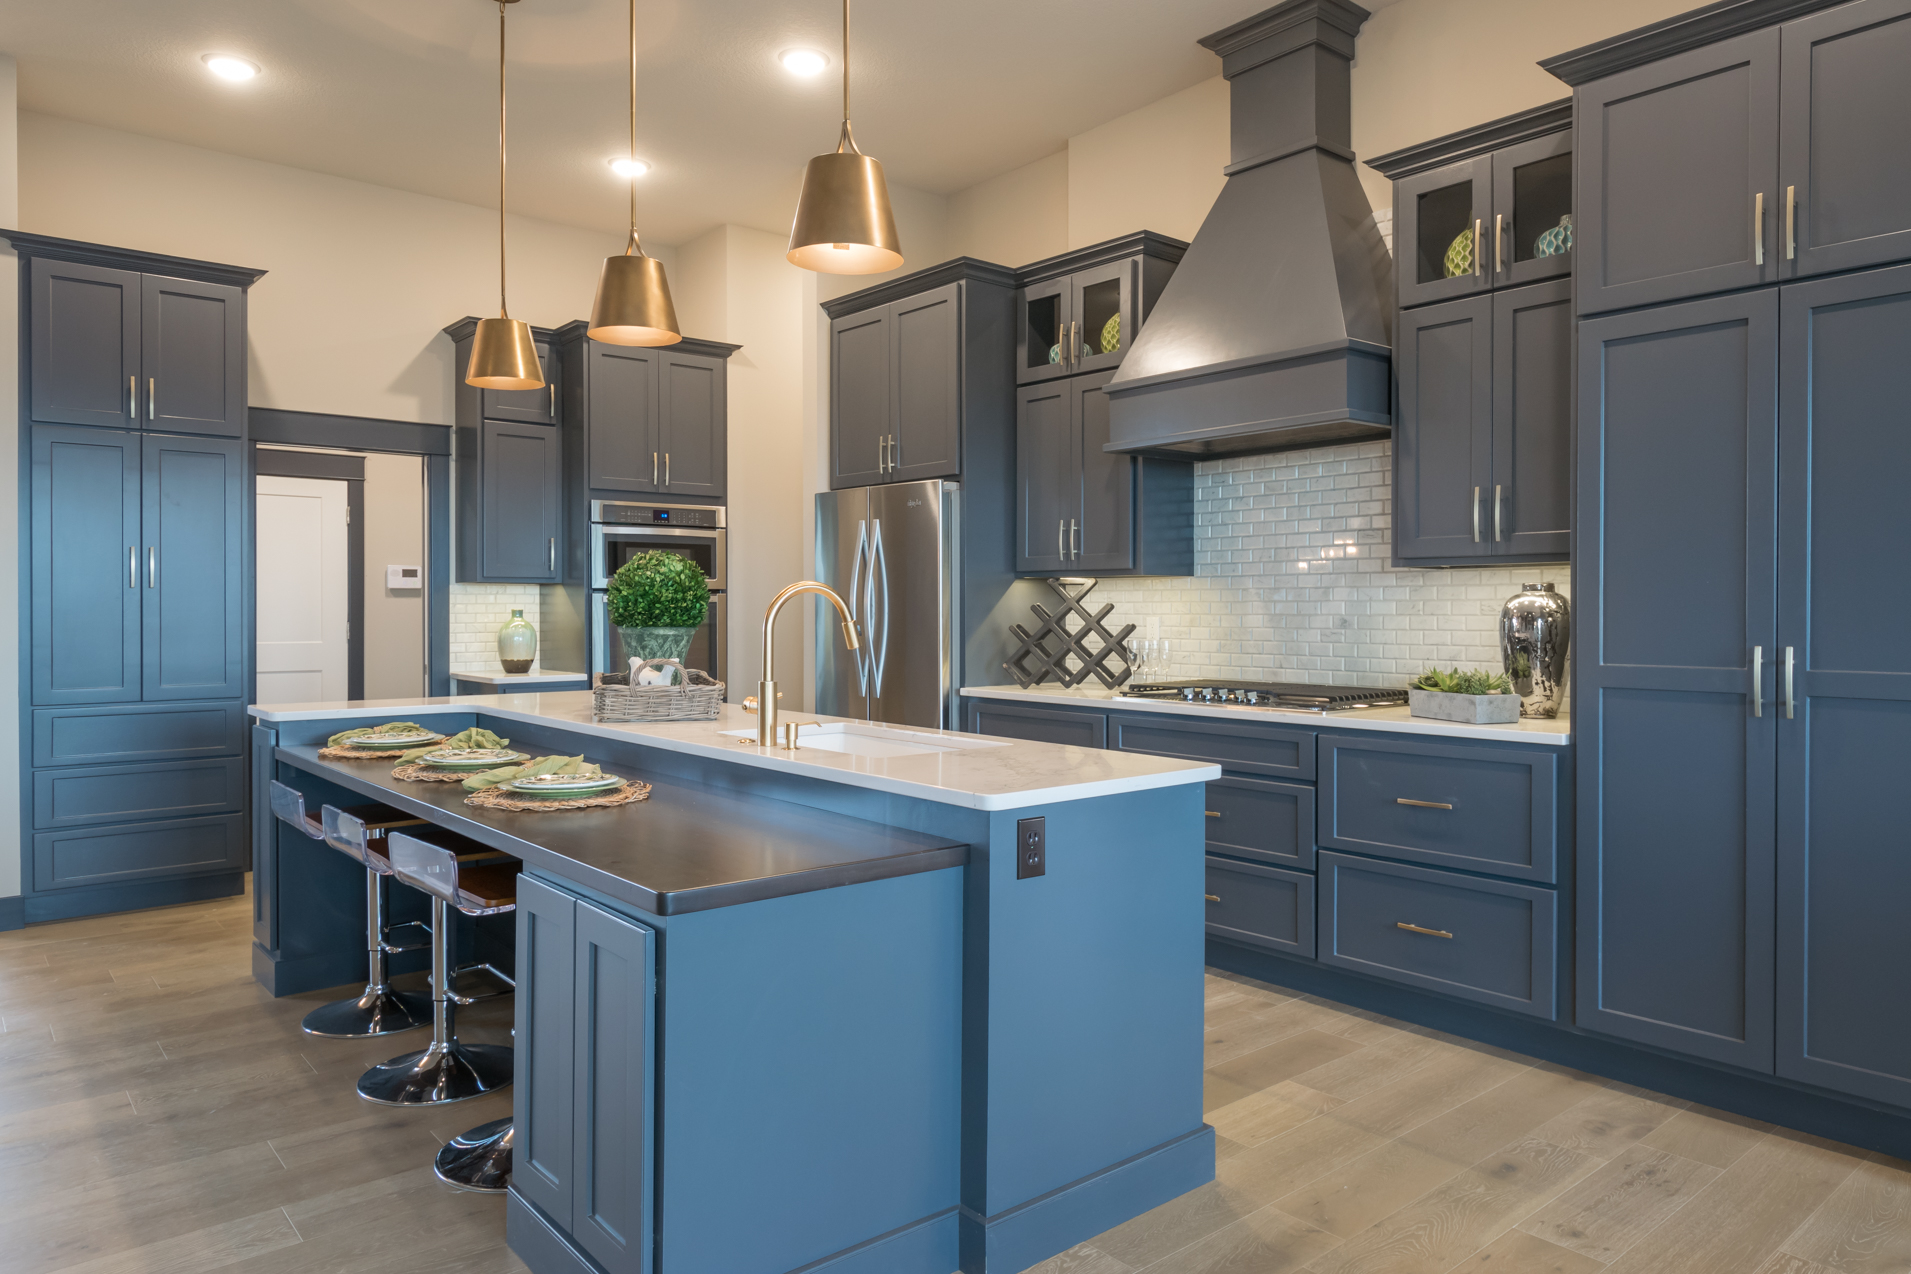 Our breakfast bar at our model home is the perfect space to finish up any school work!